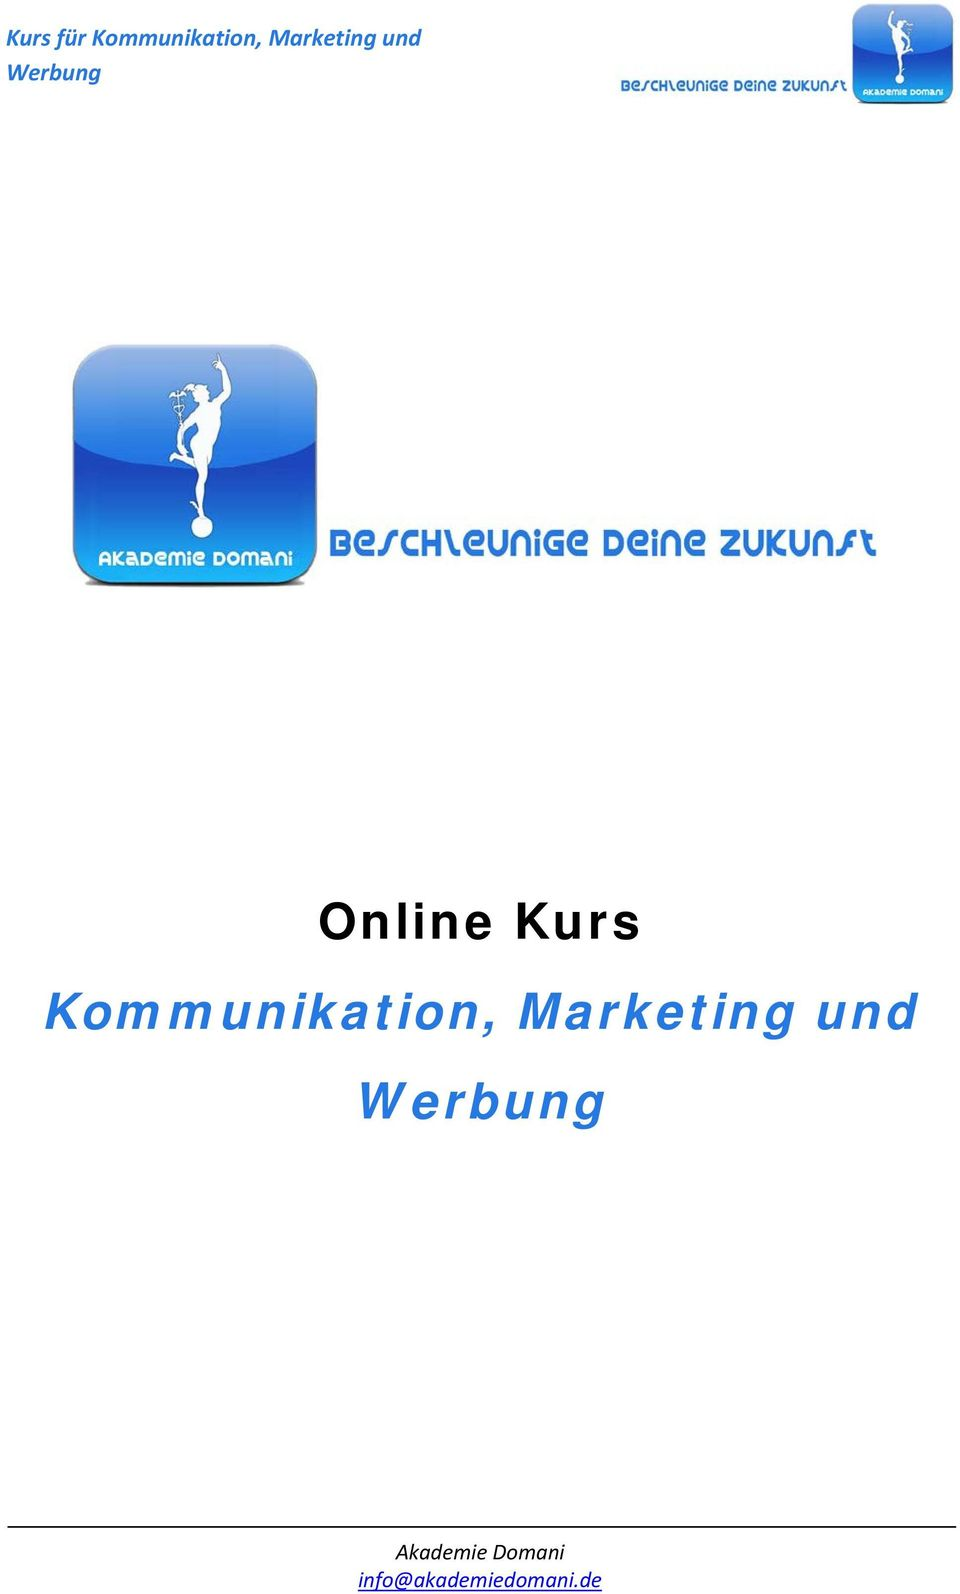 Kommunikation, Marketing und